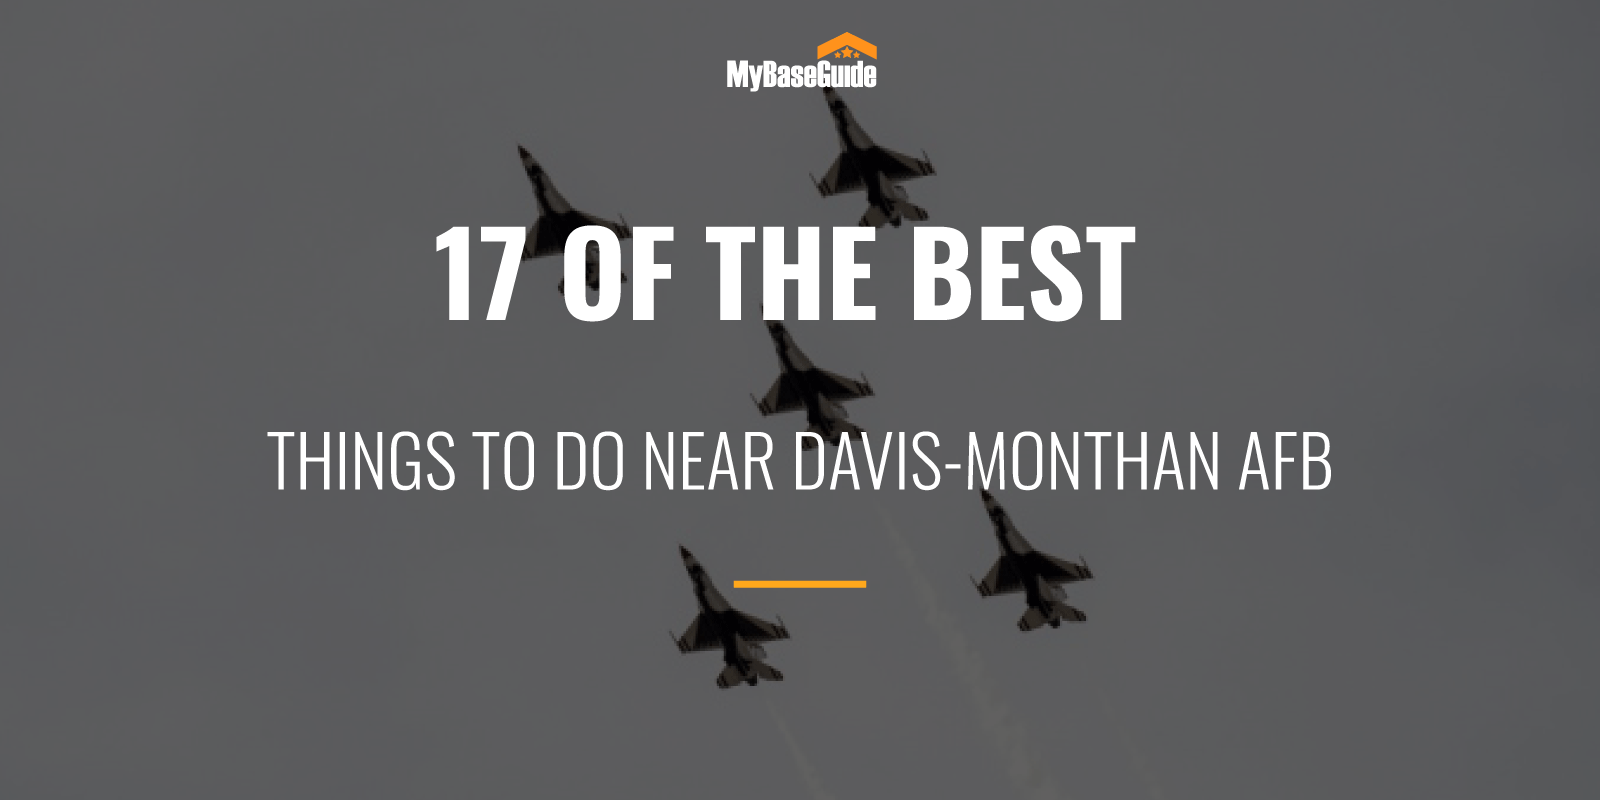 17 Of the Best Things to Do Near Davis-Monthan AFB